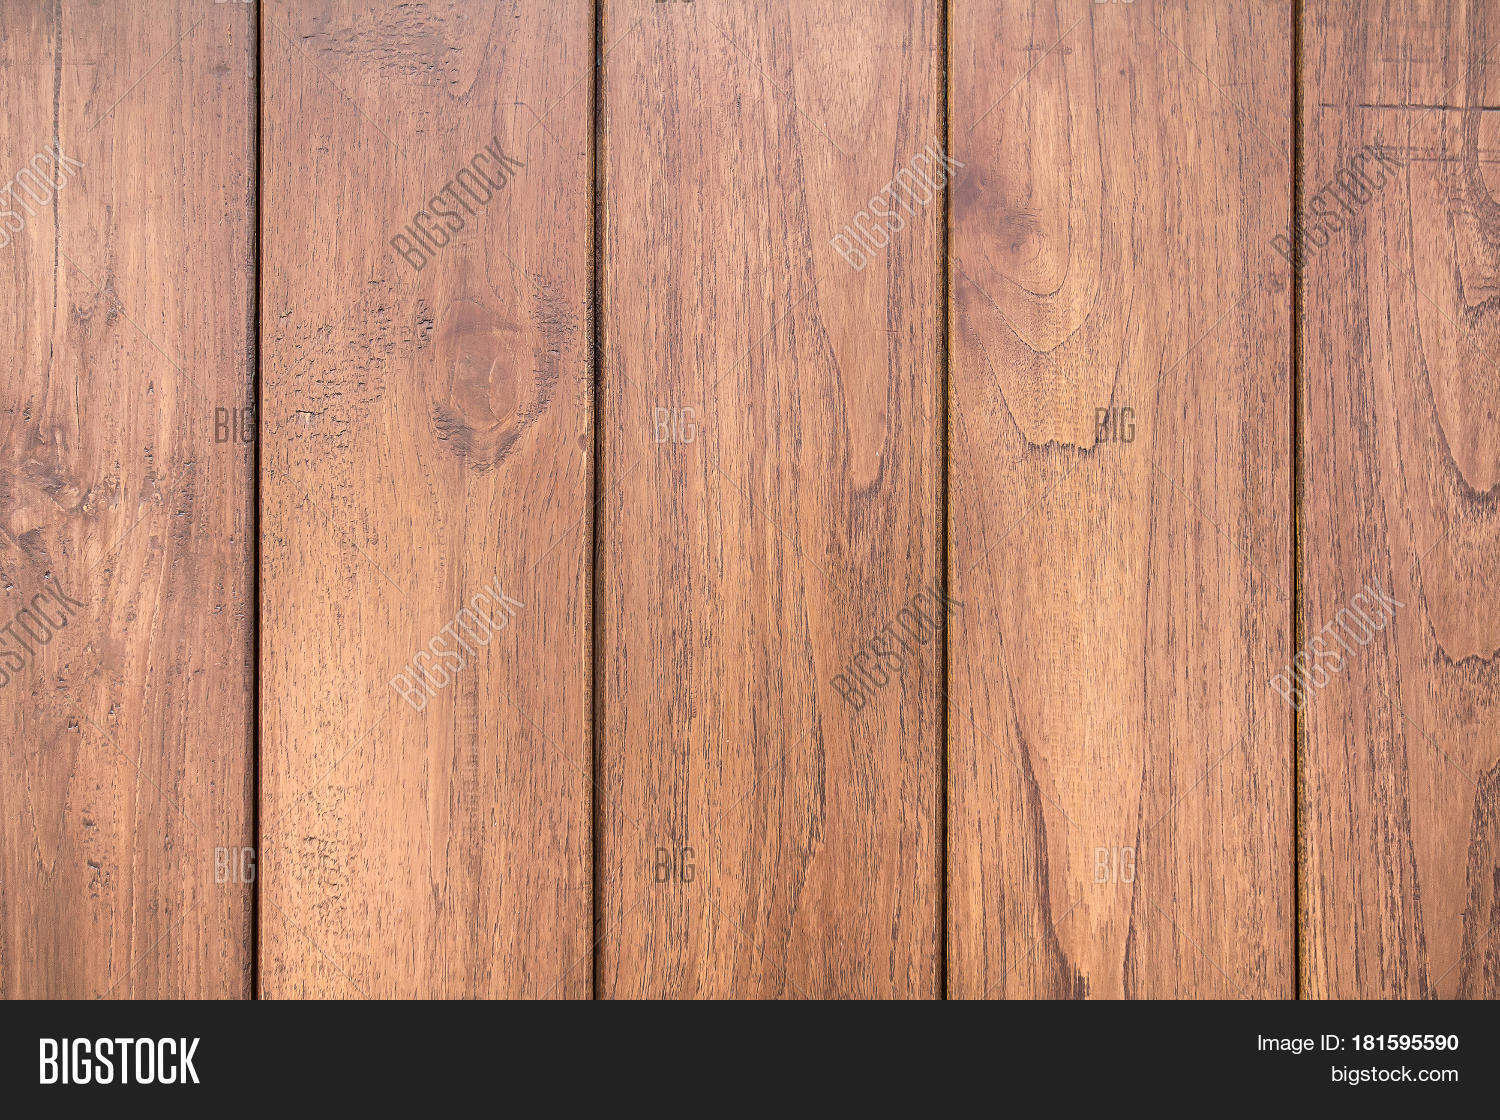 Wood texture wood background image photo bigstock - Exterior textured paint for wood pict ...